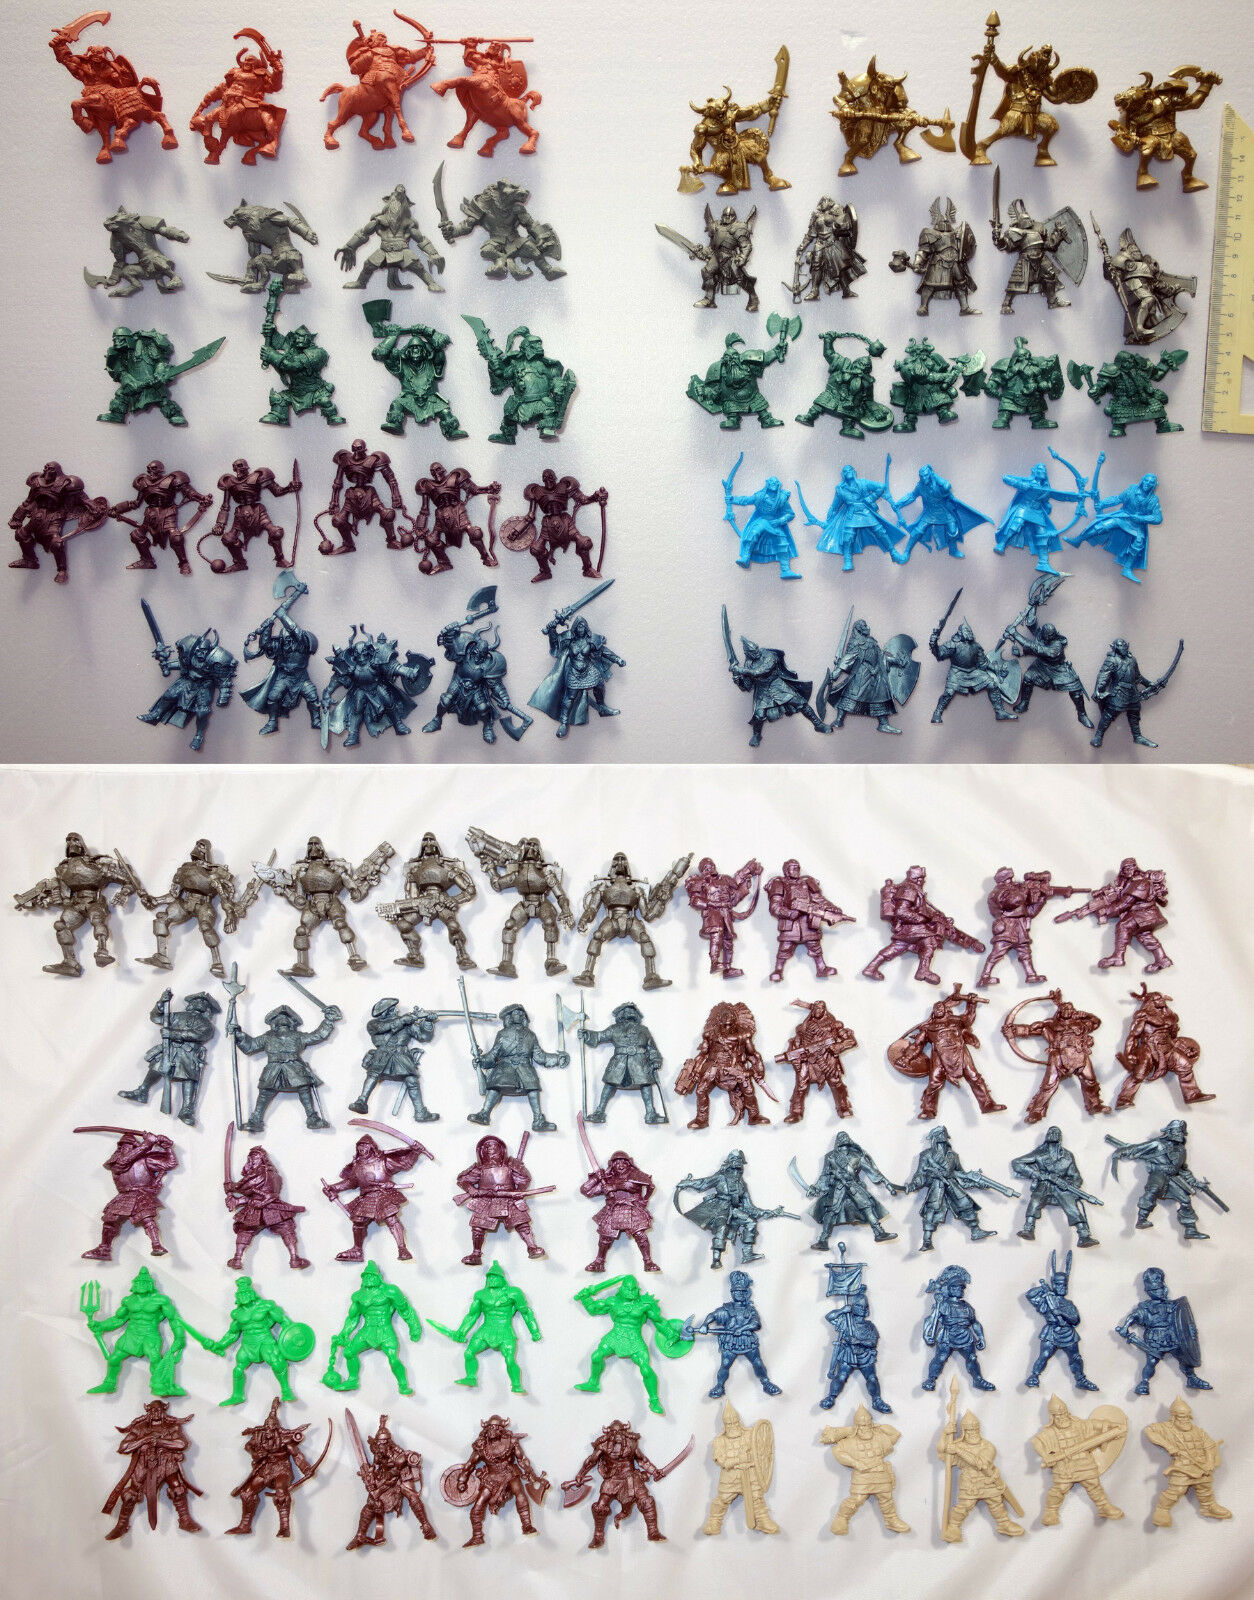 Battle Fantasy Set   98 Plastic Toy Soldiers from Russia, 54mm, Tehnolog, New